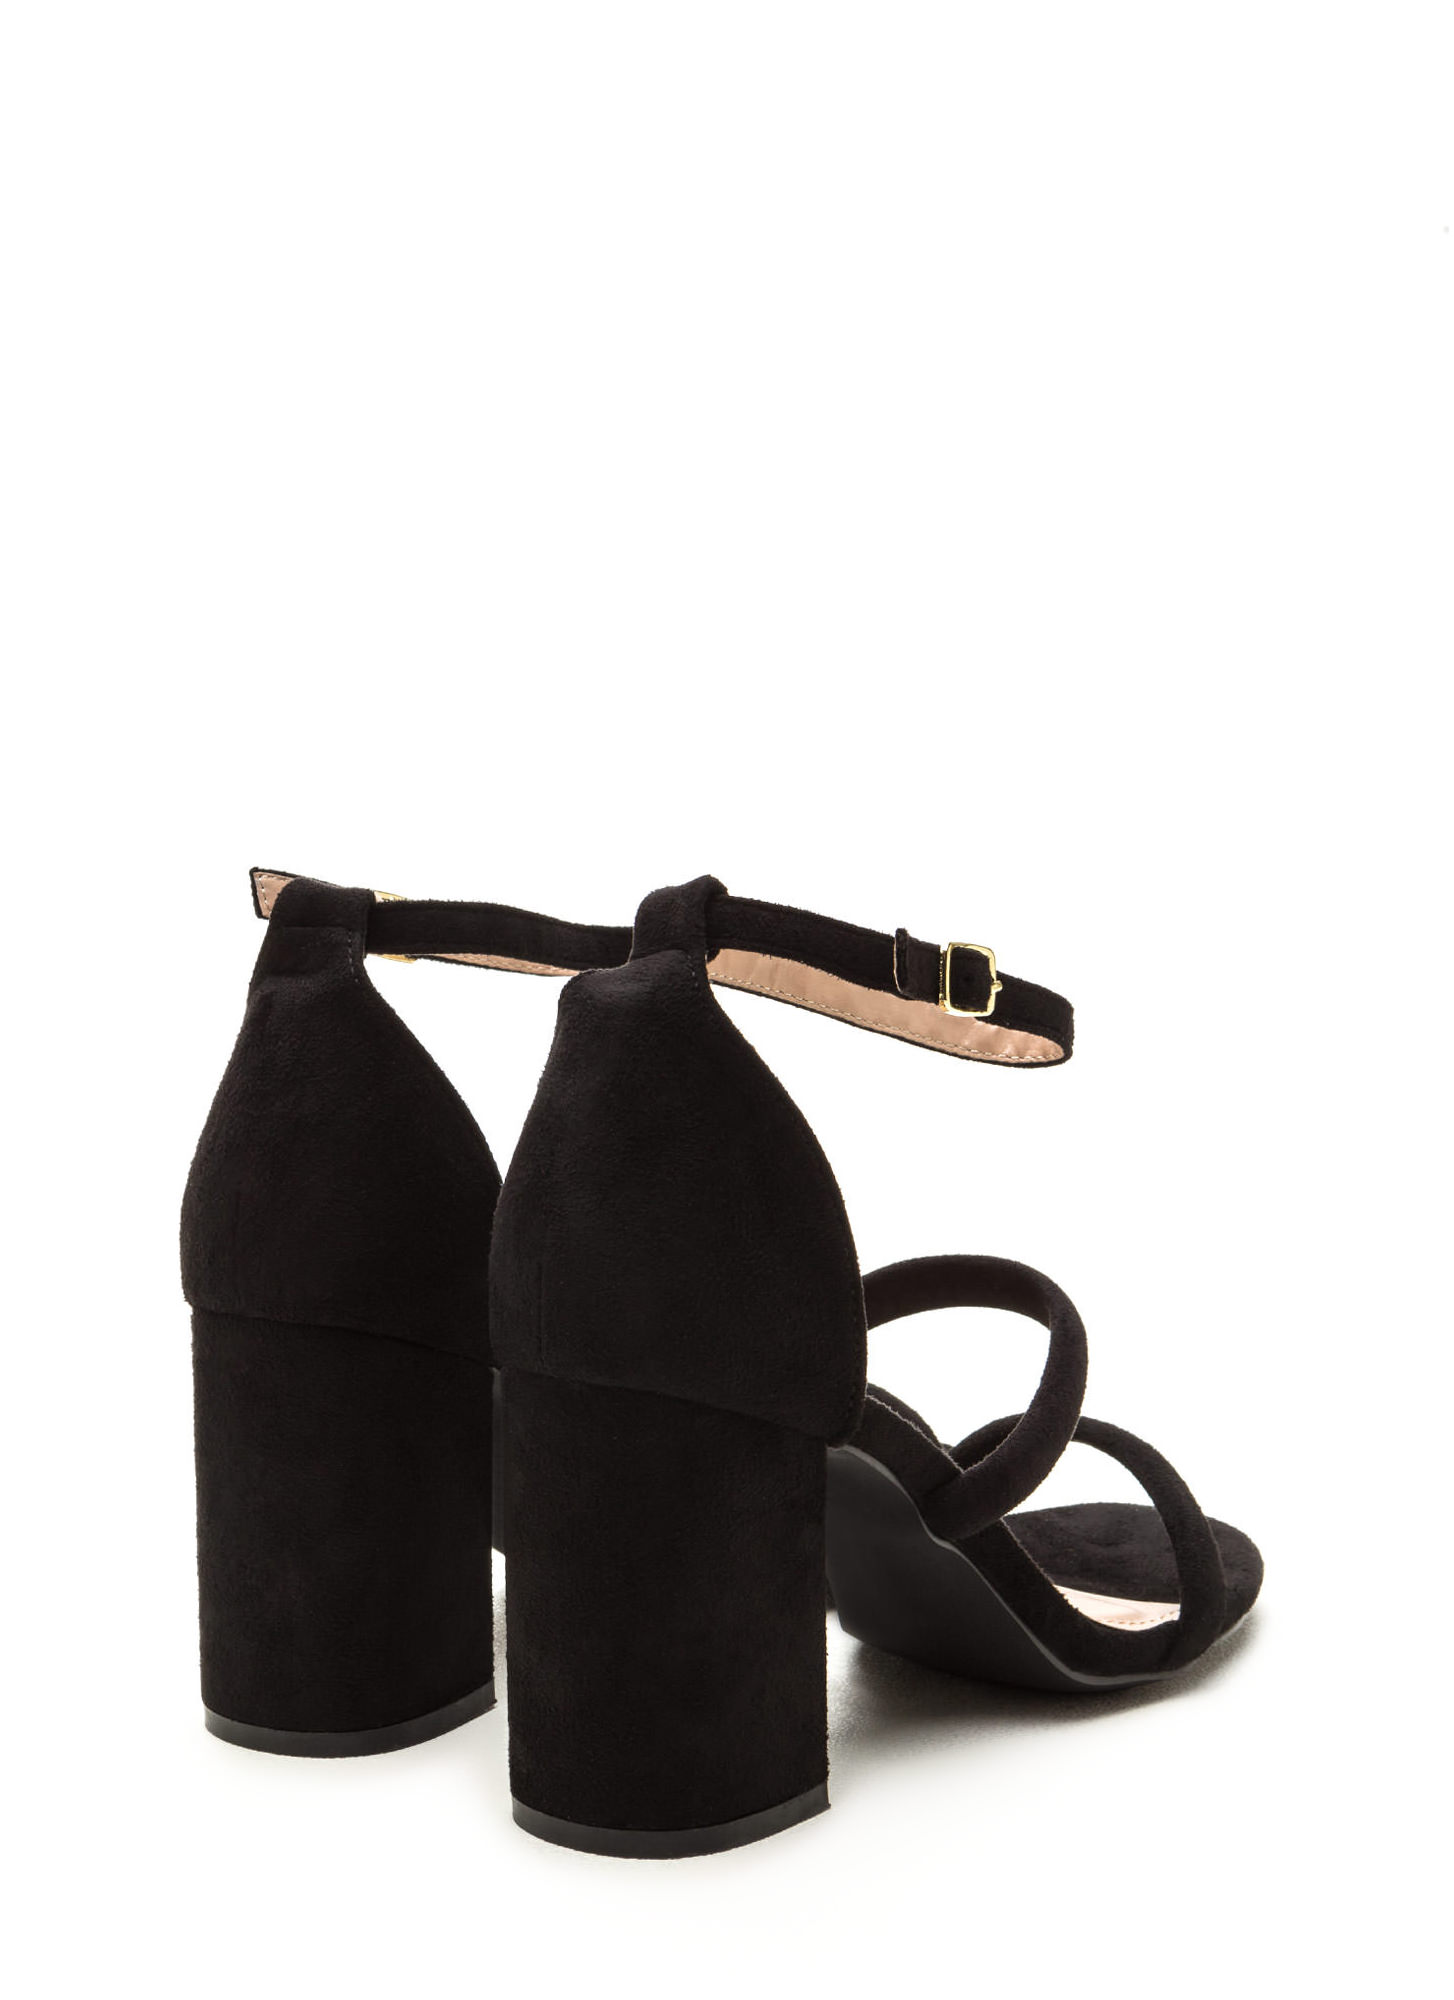 New Muse Strappy Block Heels BLACK